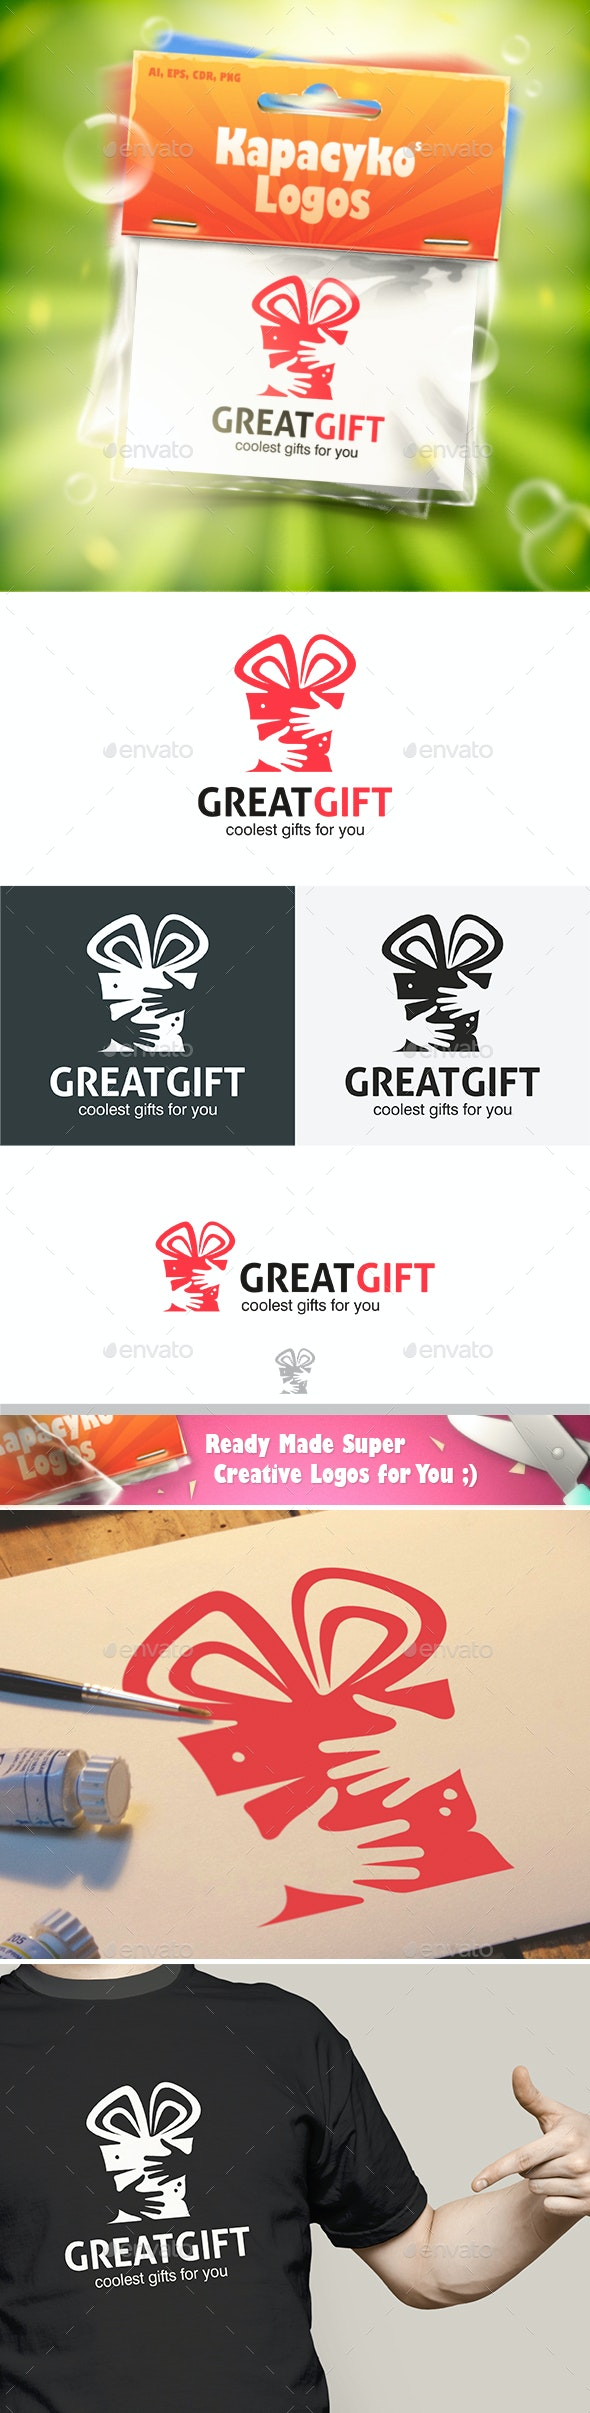 Great Gift Logo - Abstract Logo Templates